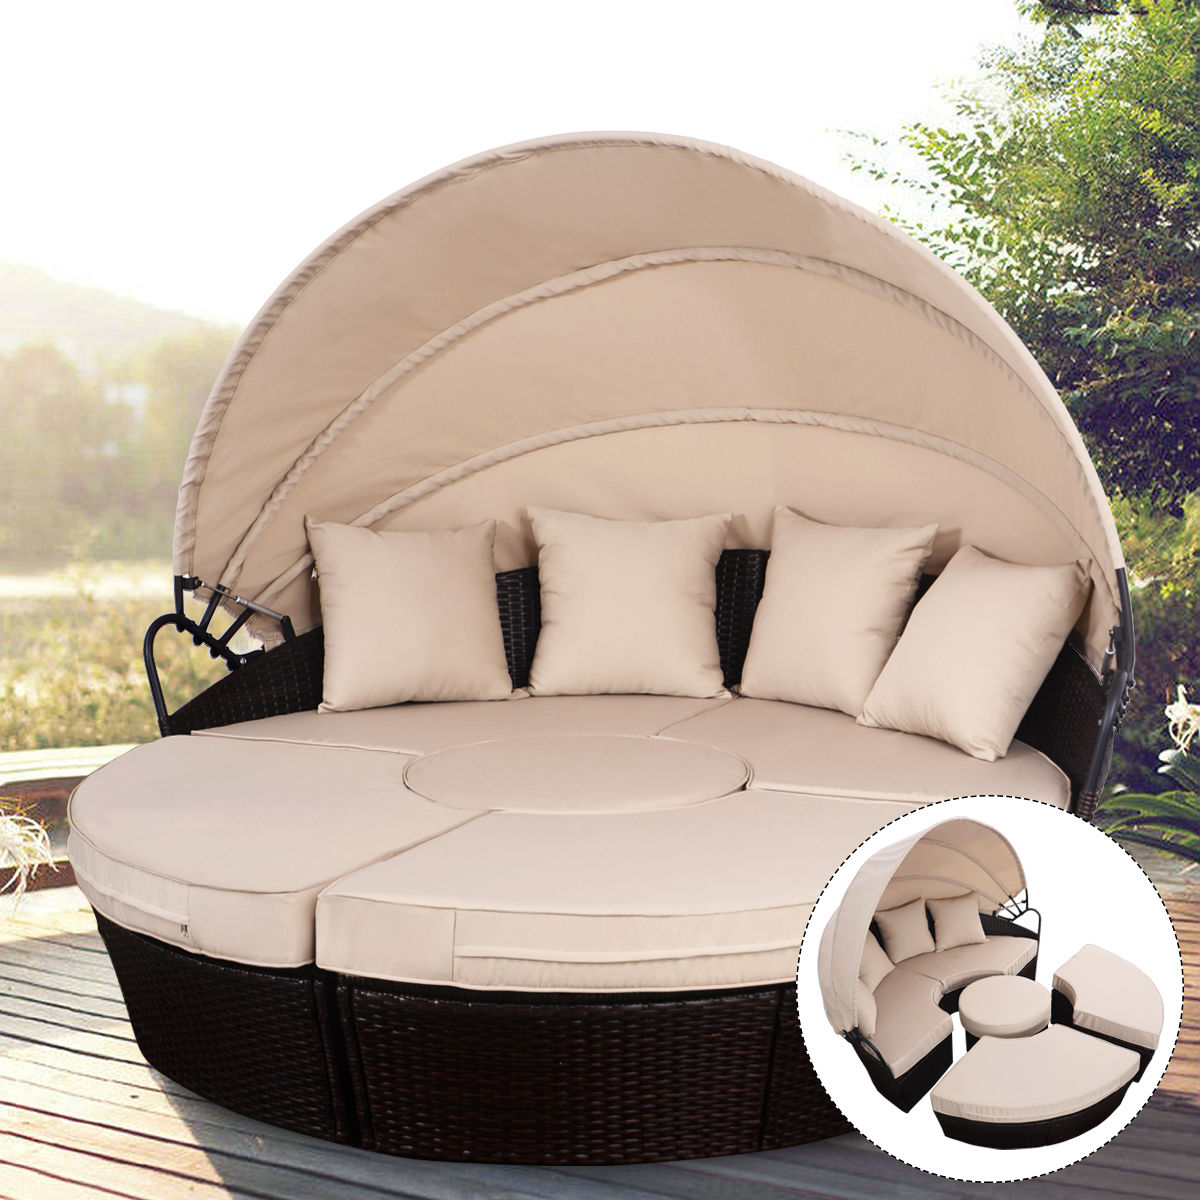 Costway Outdoor Mix Brown Rattan Patio Sofa Furniture Round Retractable Canopy Day Bed by Costway